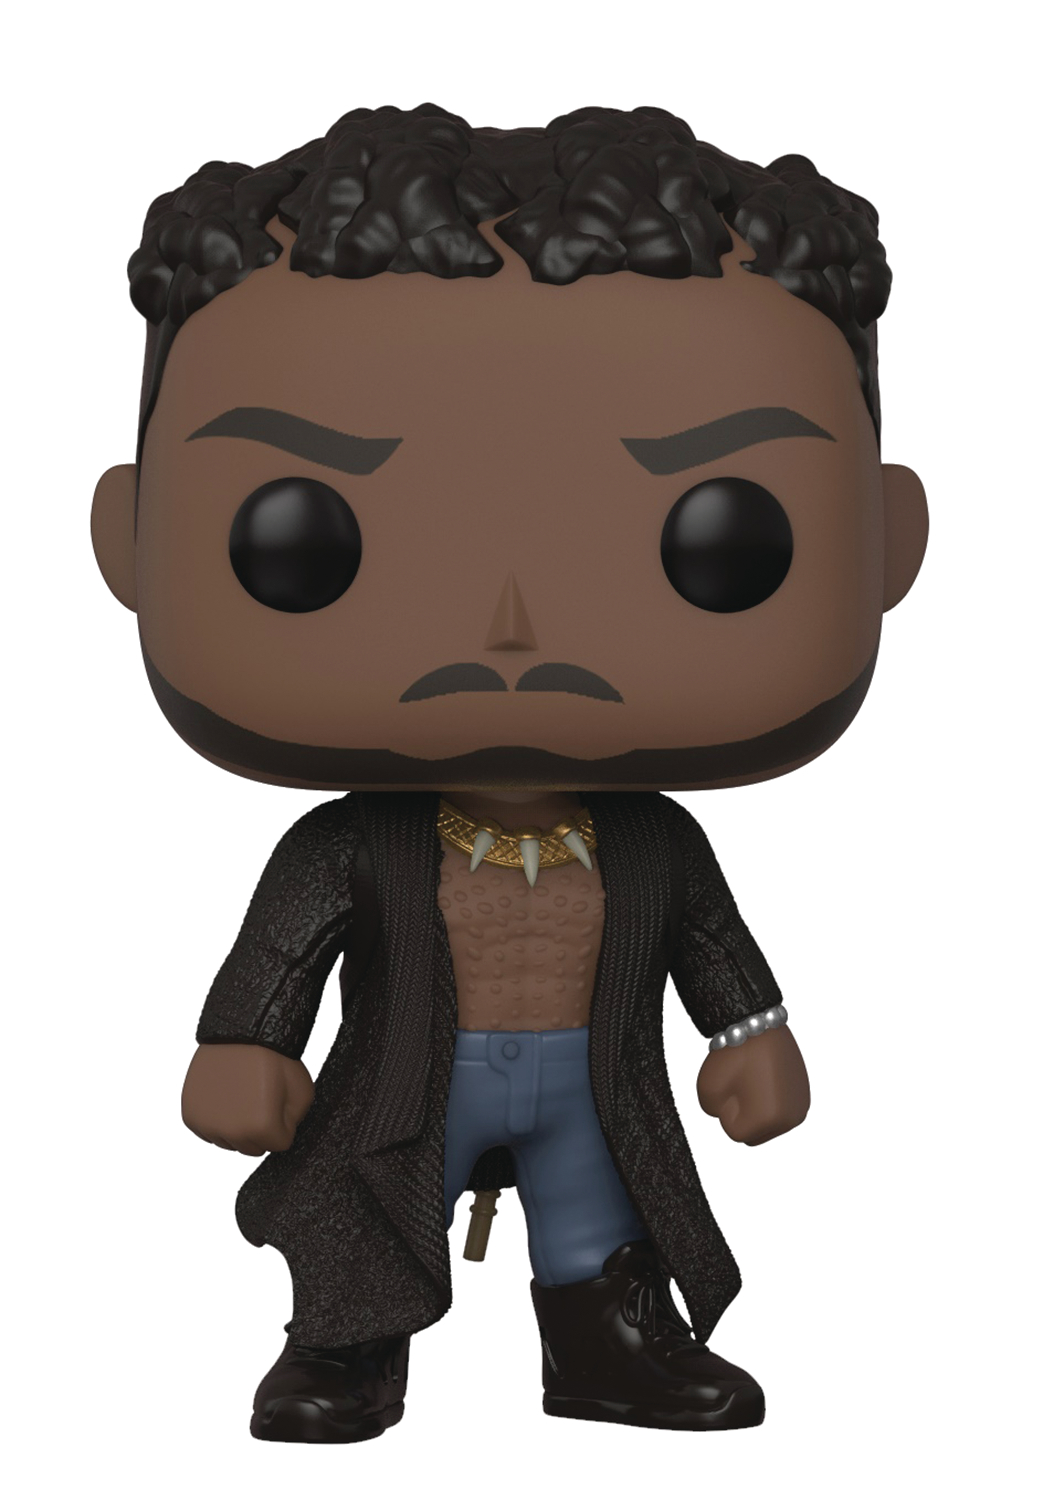 POP MARVEL BLACK PANTHER ERIK KILLMONGER VIN FIG